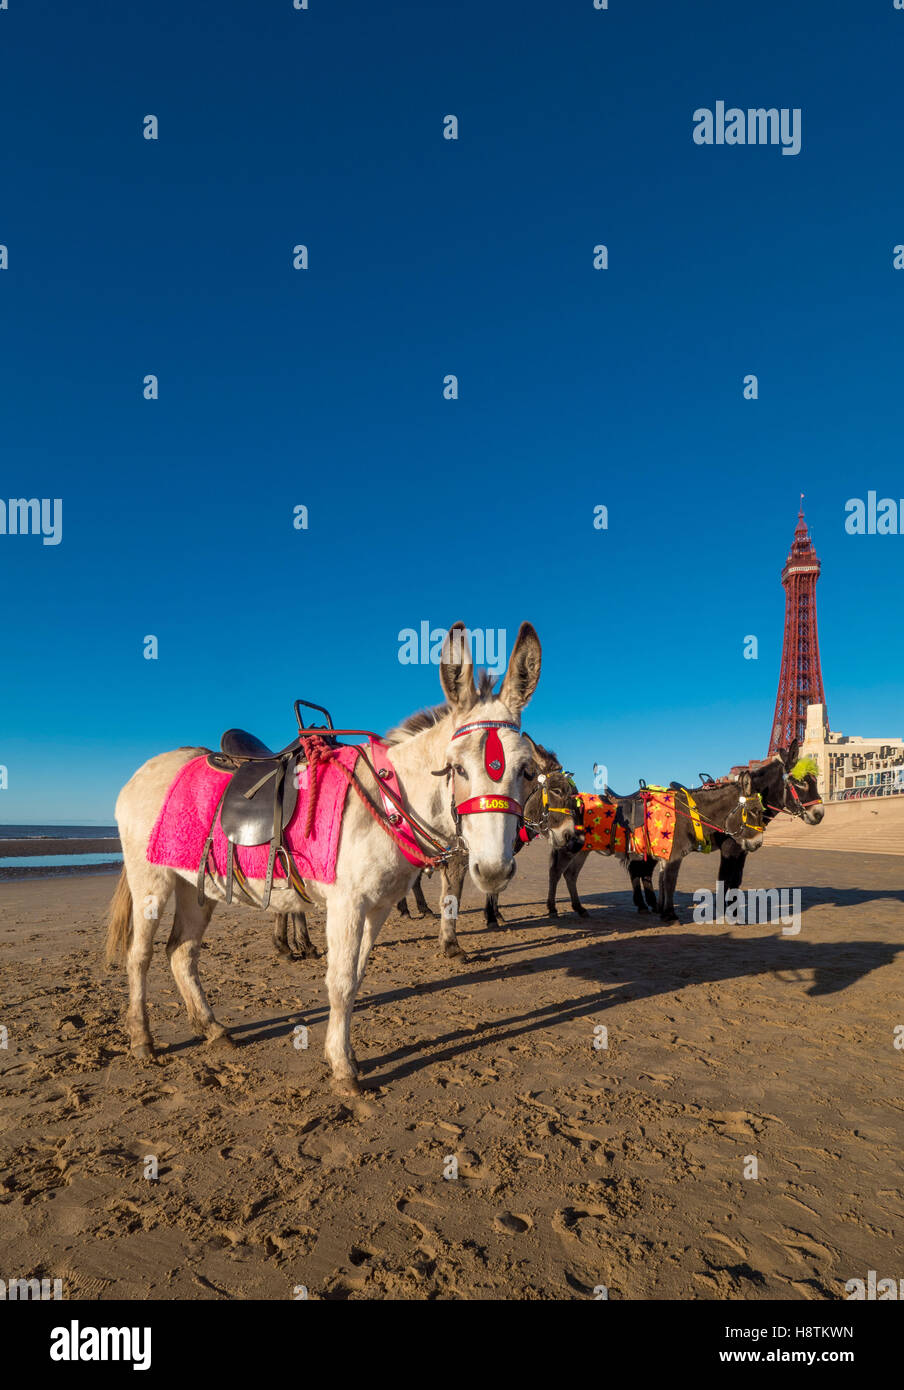 Donkeys on beach with Blackpool Tower in distance, Blackpool, Lancashire, UK. - Stock Image